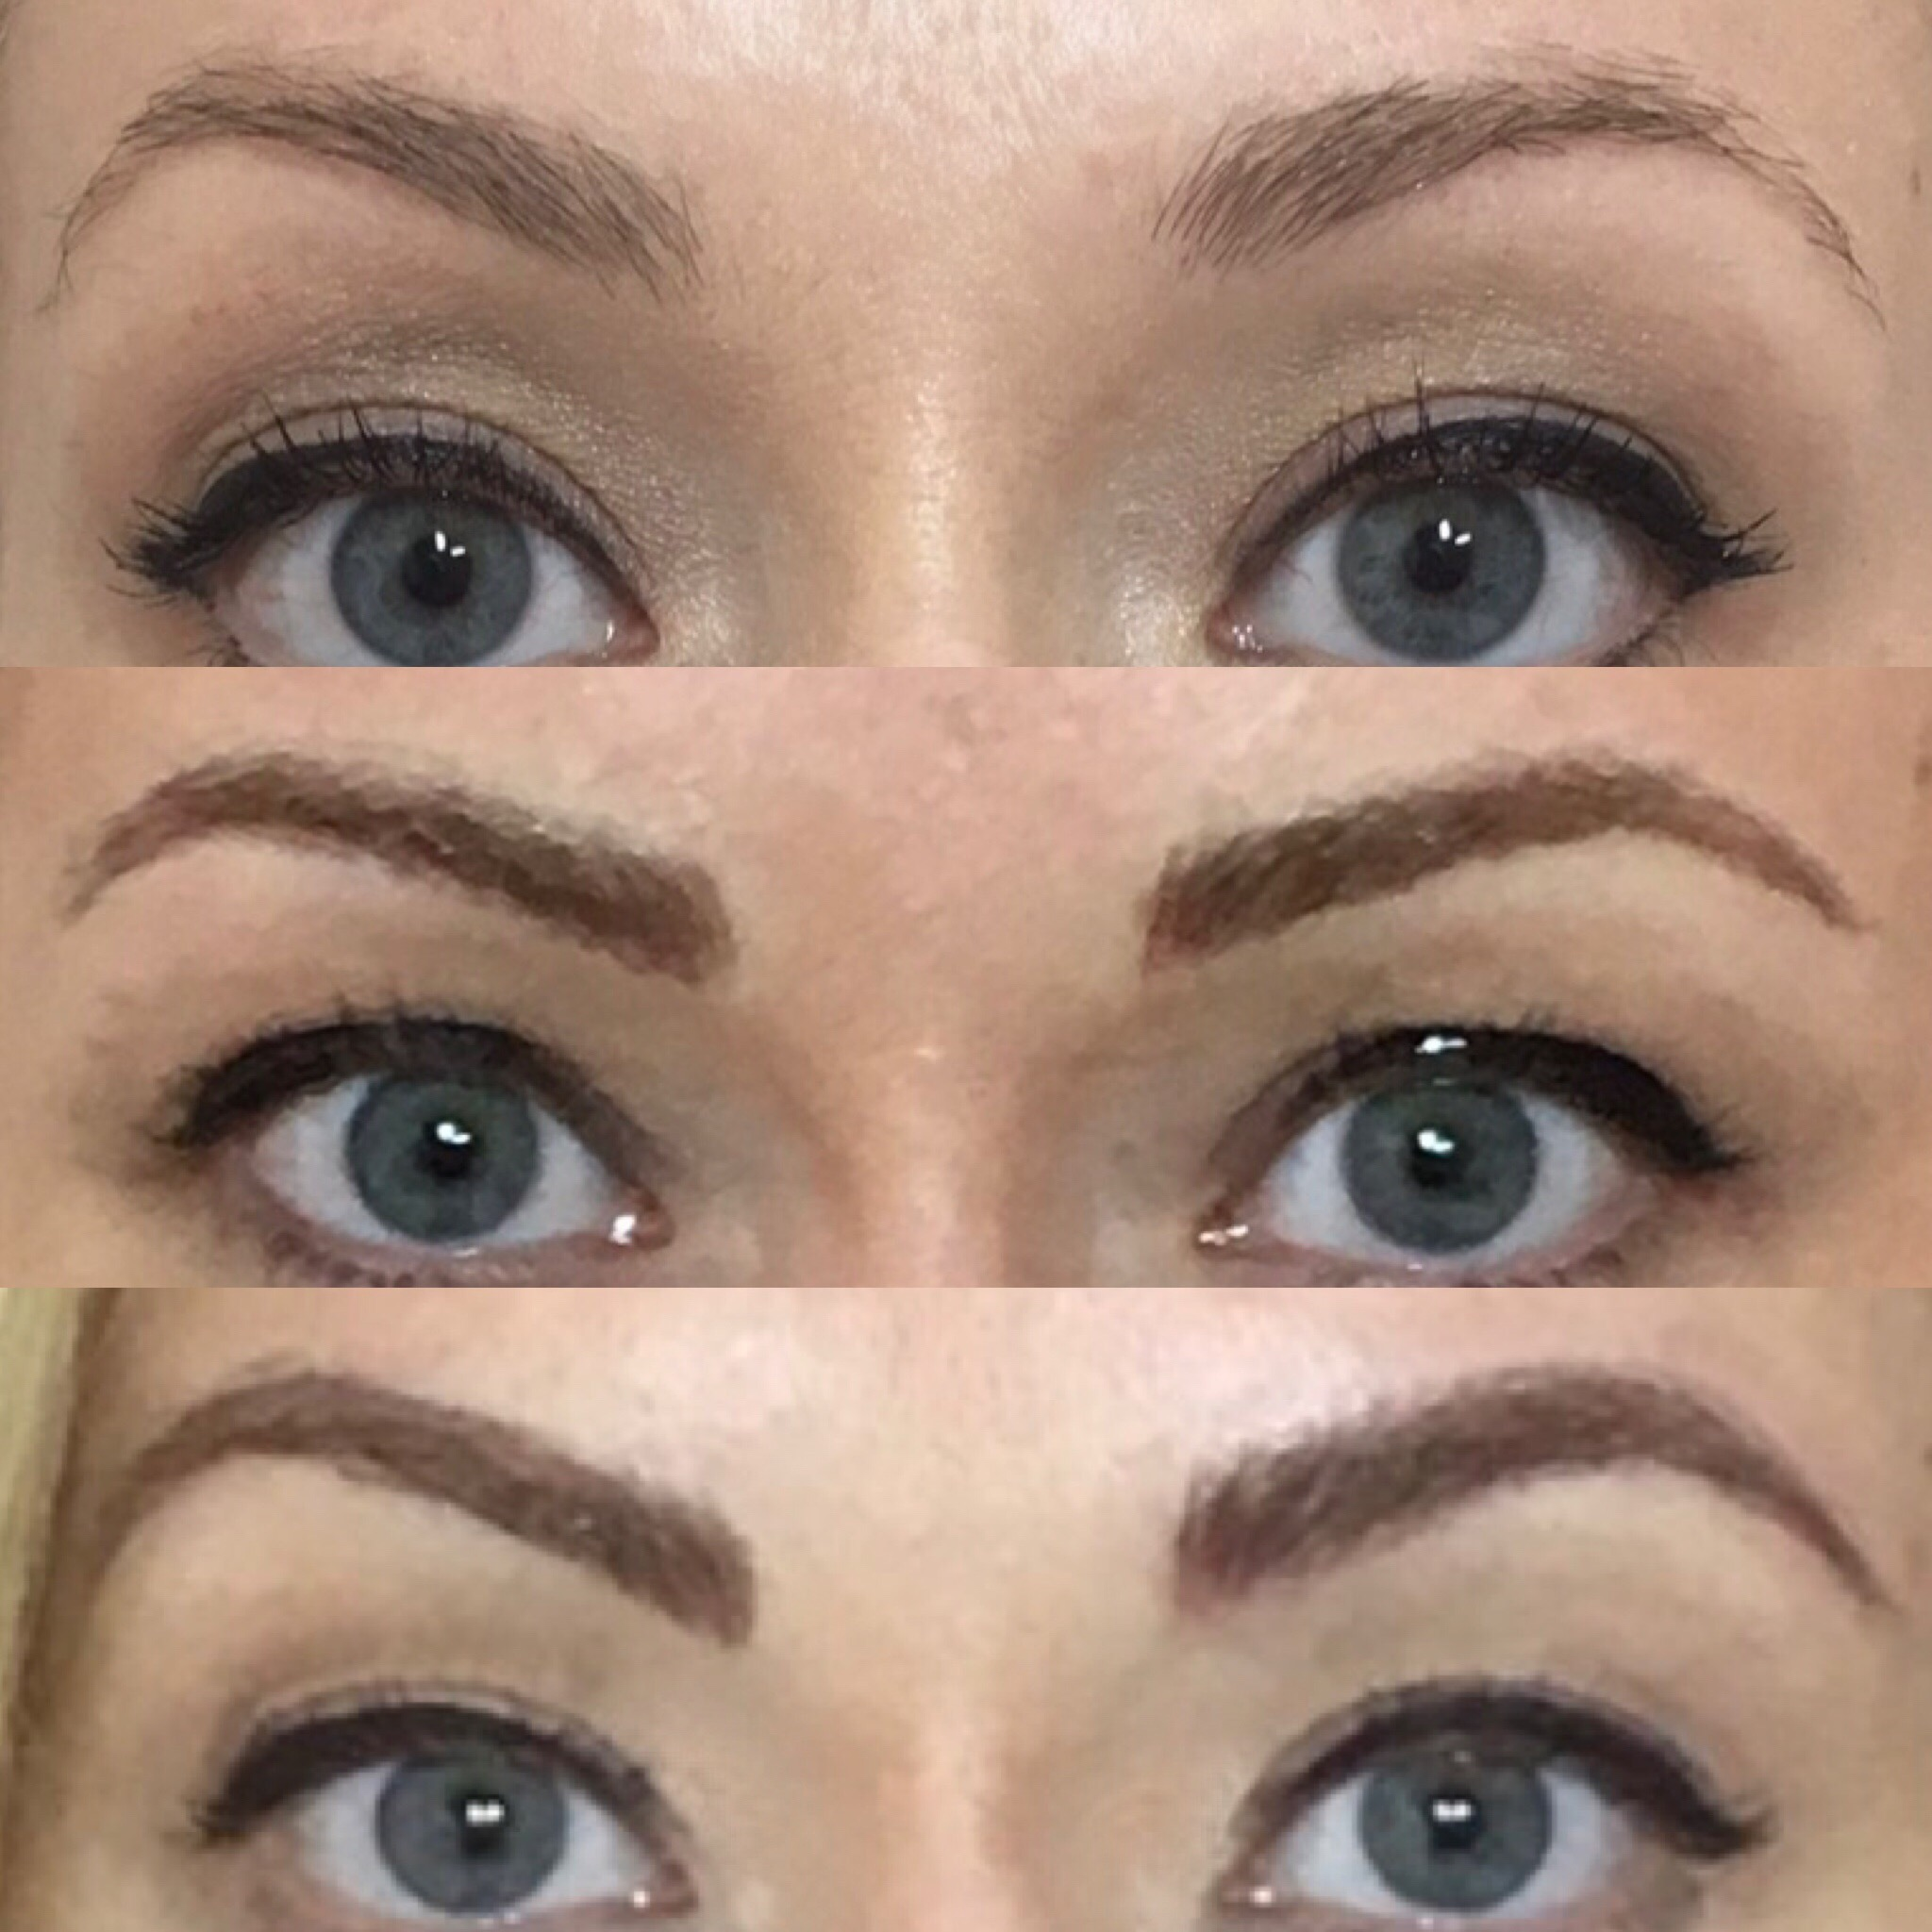 Before-and-after-eyebrow-microblading.jpg